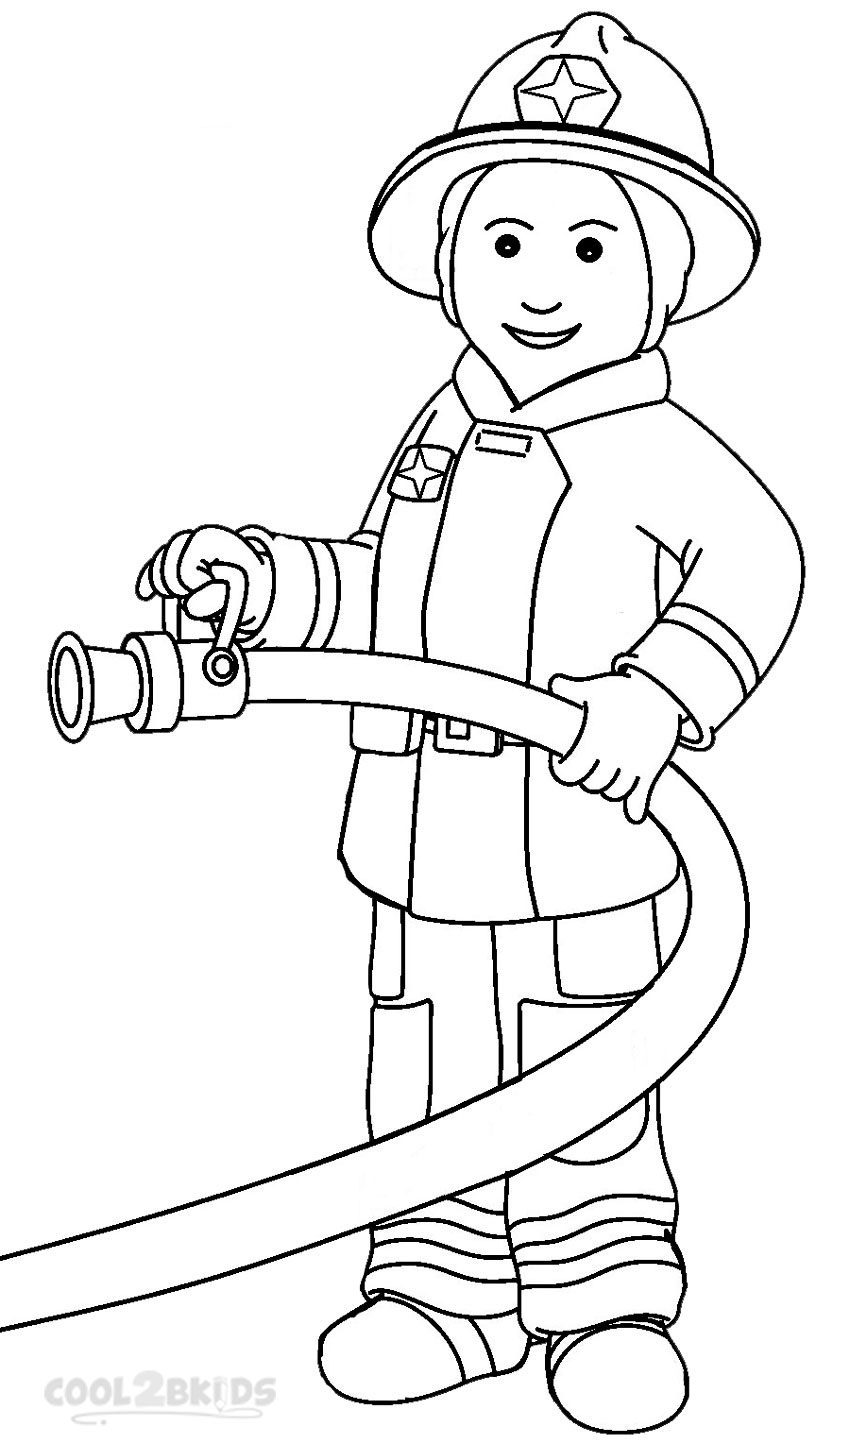 fireman coloring pages firefighters coloring pages coloring fireman pages